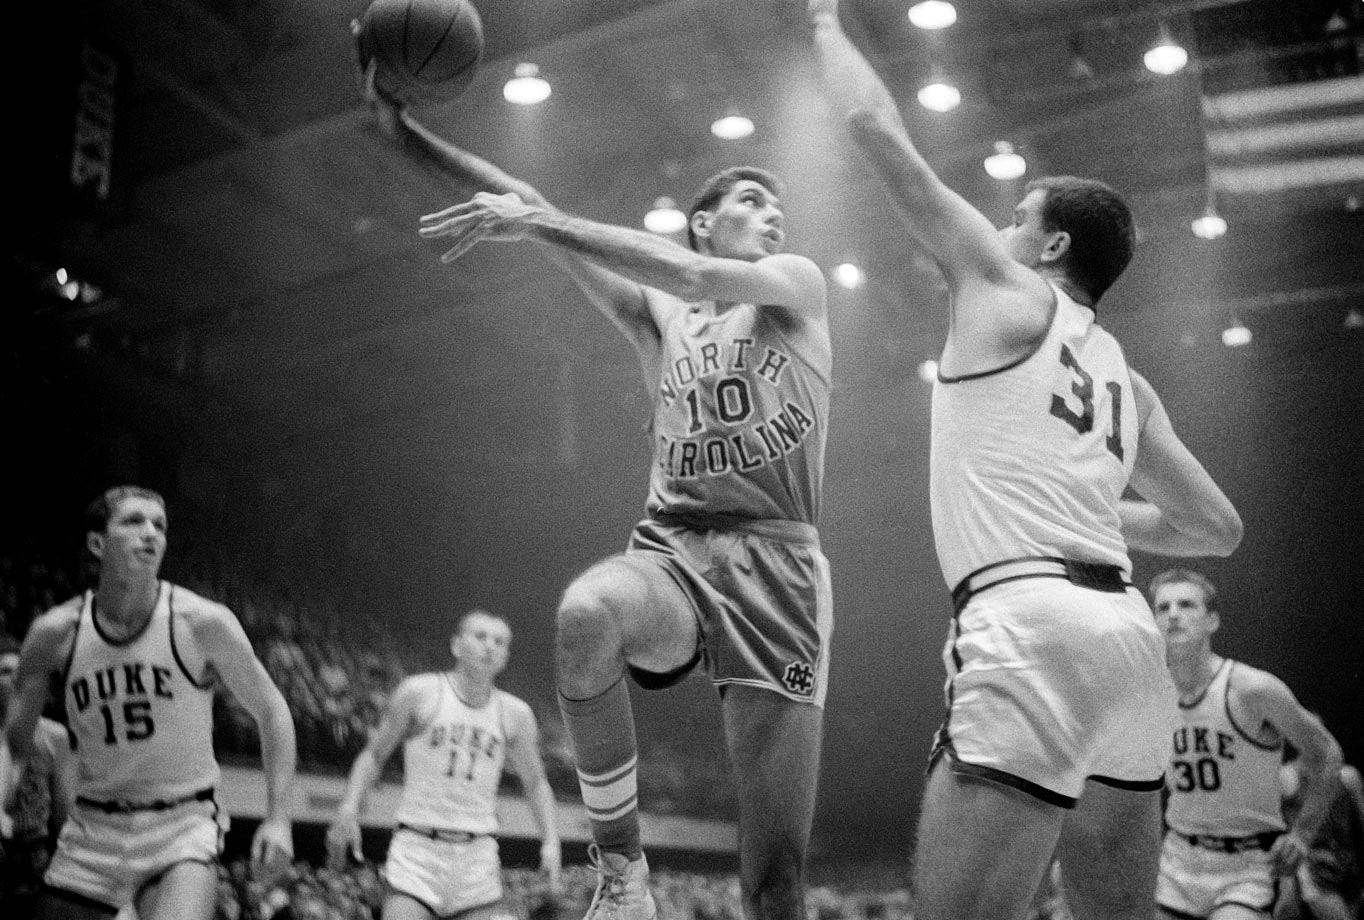 In 1957, Rosenbluth had one of the best seasons in history. He is one of just two players to win national Player of the Year, ACC Player of the Year, ACC tournament MVP and NCAA regional MVP in the same season. That year Rosenbluth averaged 28.0 points -- the highest season scoring average in North Carolina history -- and 8.75 rebounds, and the Tar Heels claimed a national championship in an epic battle with Kansas. In the championship game, Rosenbluth scored 20 points to lead the Jayhawks to a triple-overtime victory over Wilt Chamberlain-led Kansas.